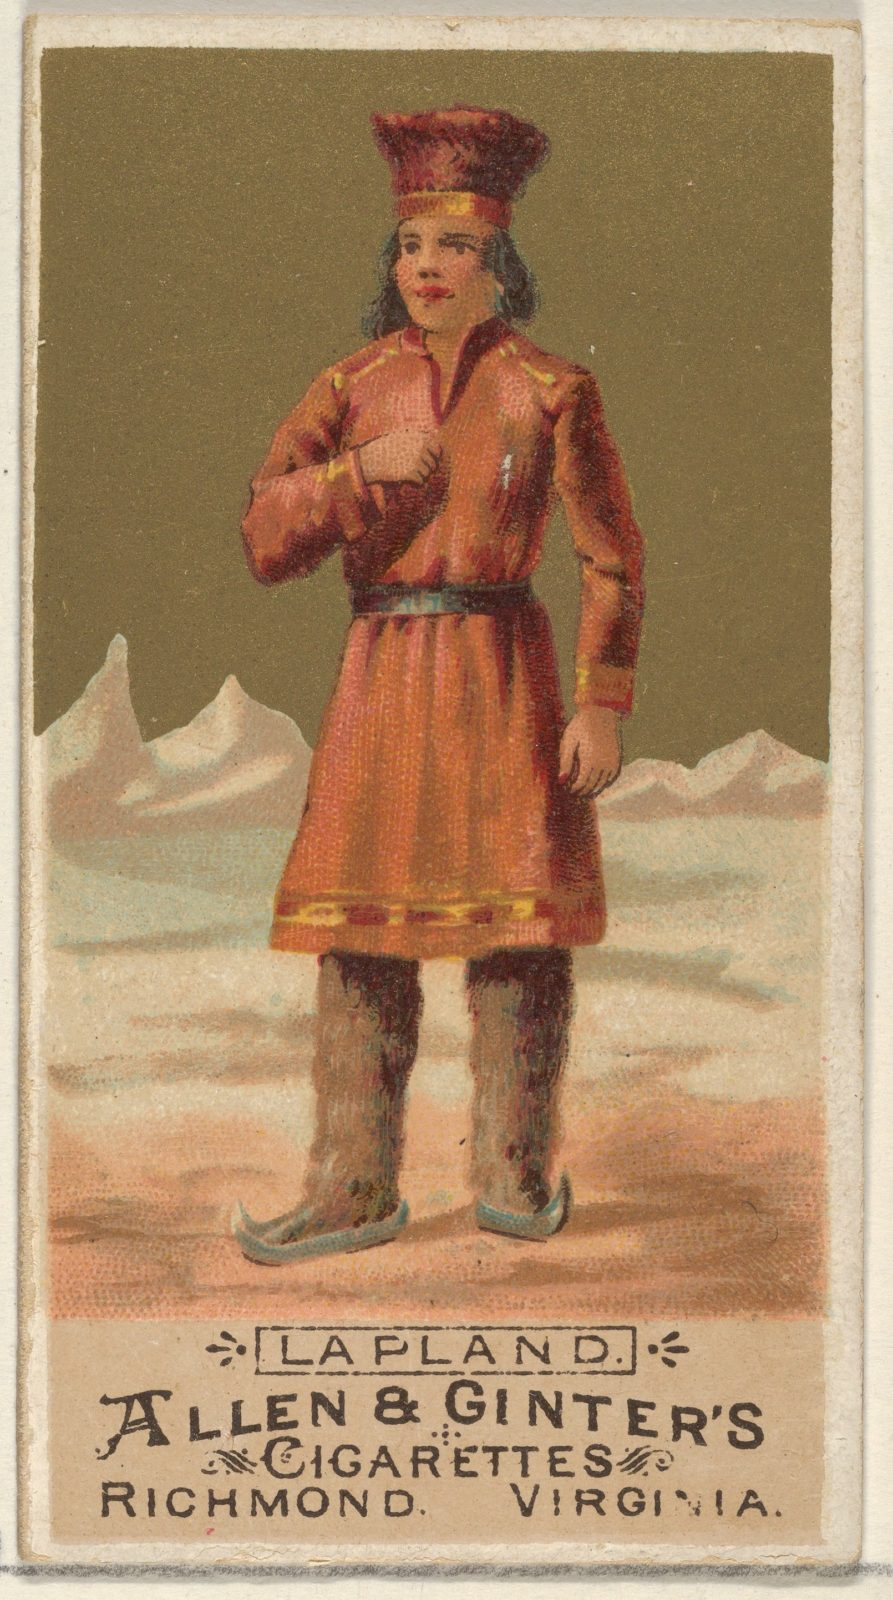 Lapland, from the Natives in Costume series (N16) for Allen & Ginter Cigarettes Brands